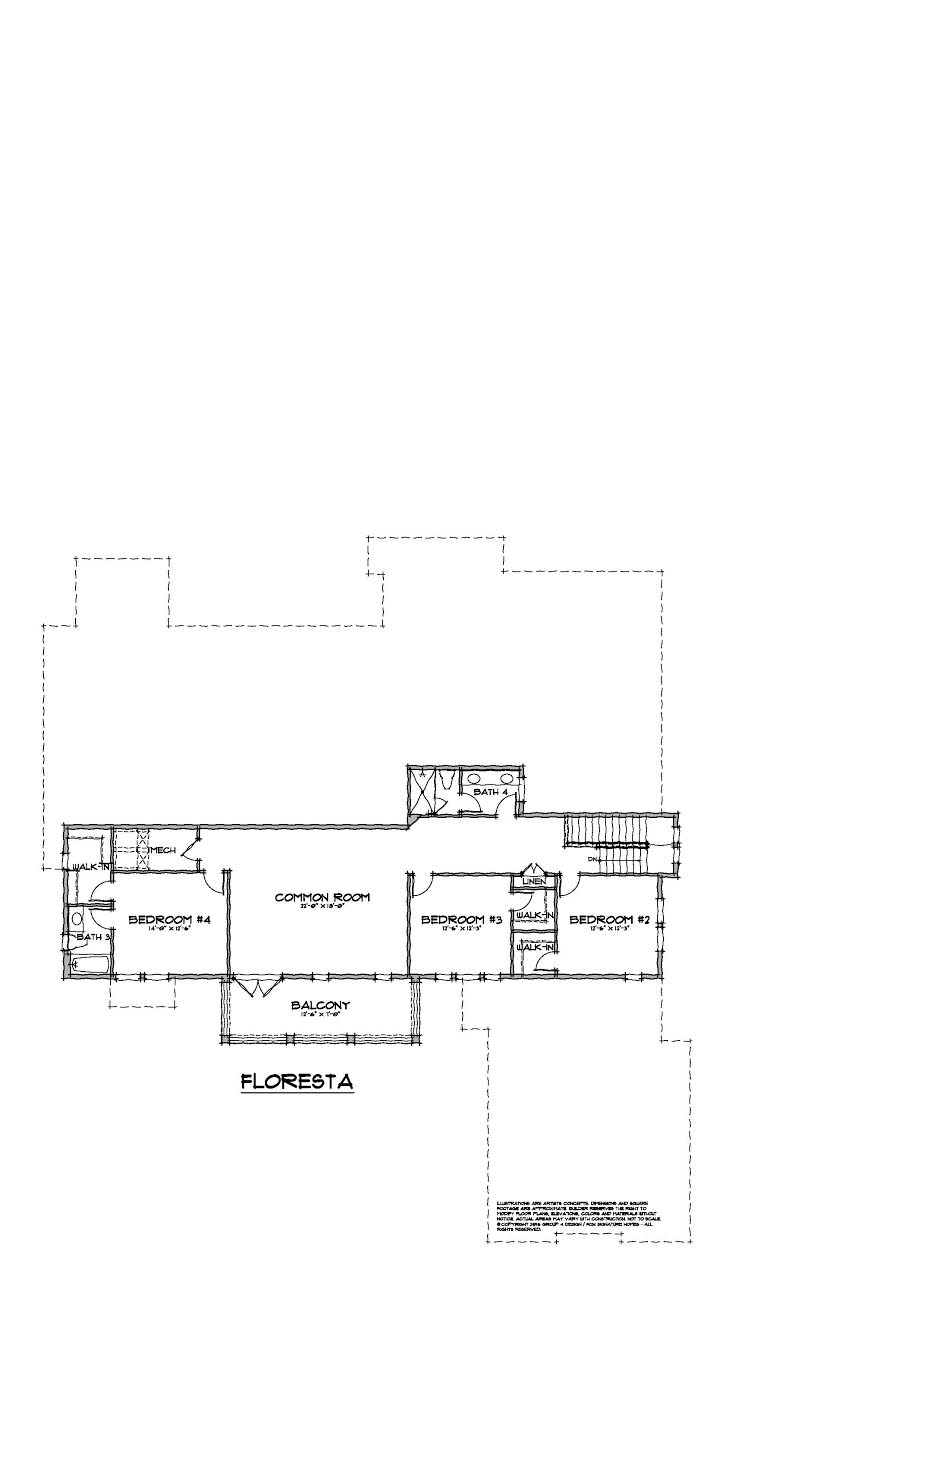 Floresta Floorplan 2nd Floor.jpg